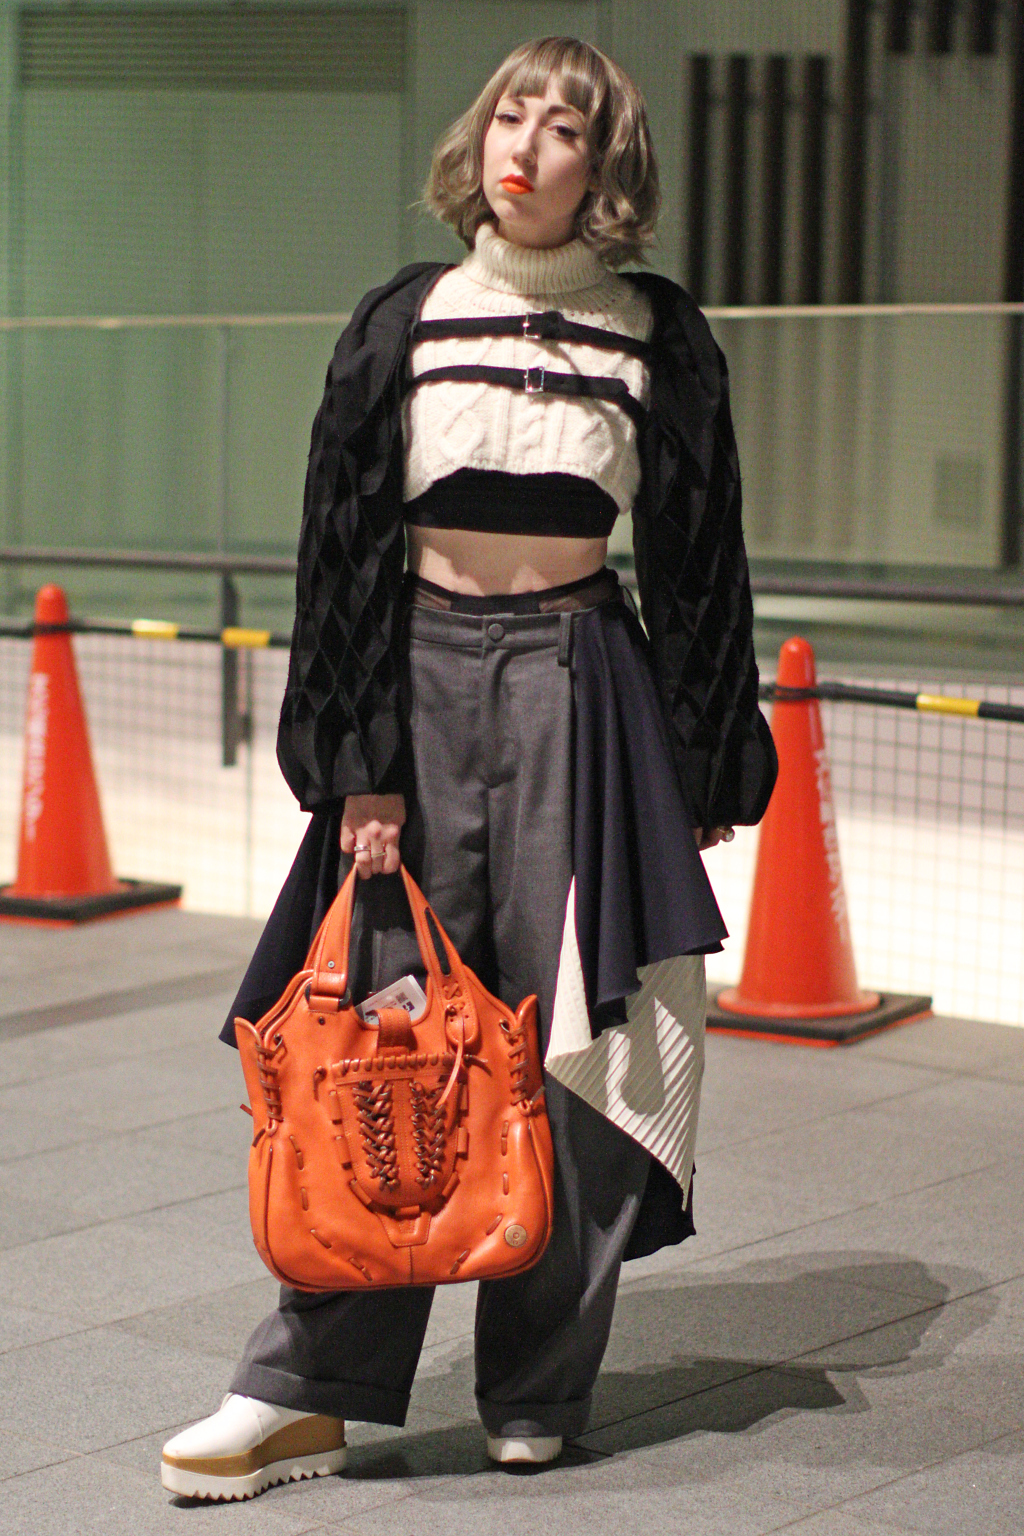 tokyo fashion week, spring 2016, ootd, outfit, blogger